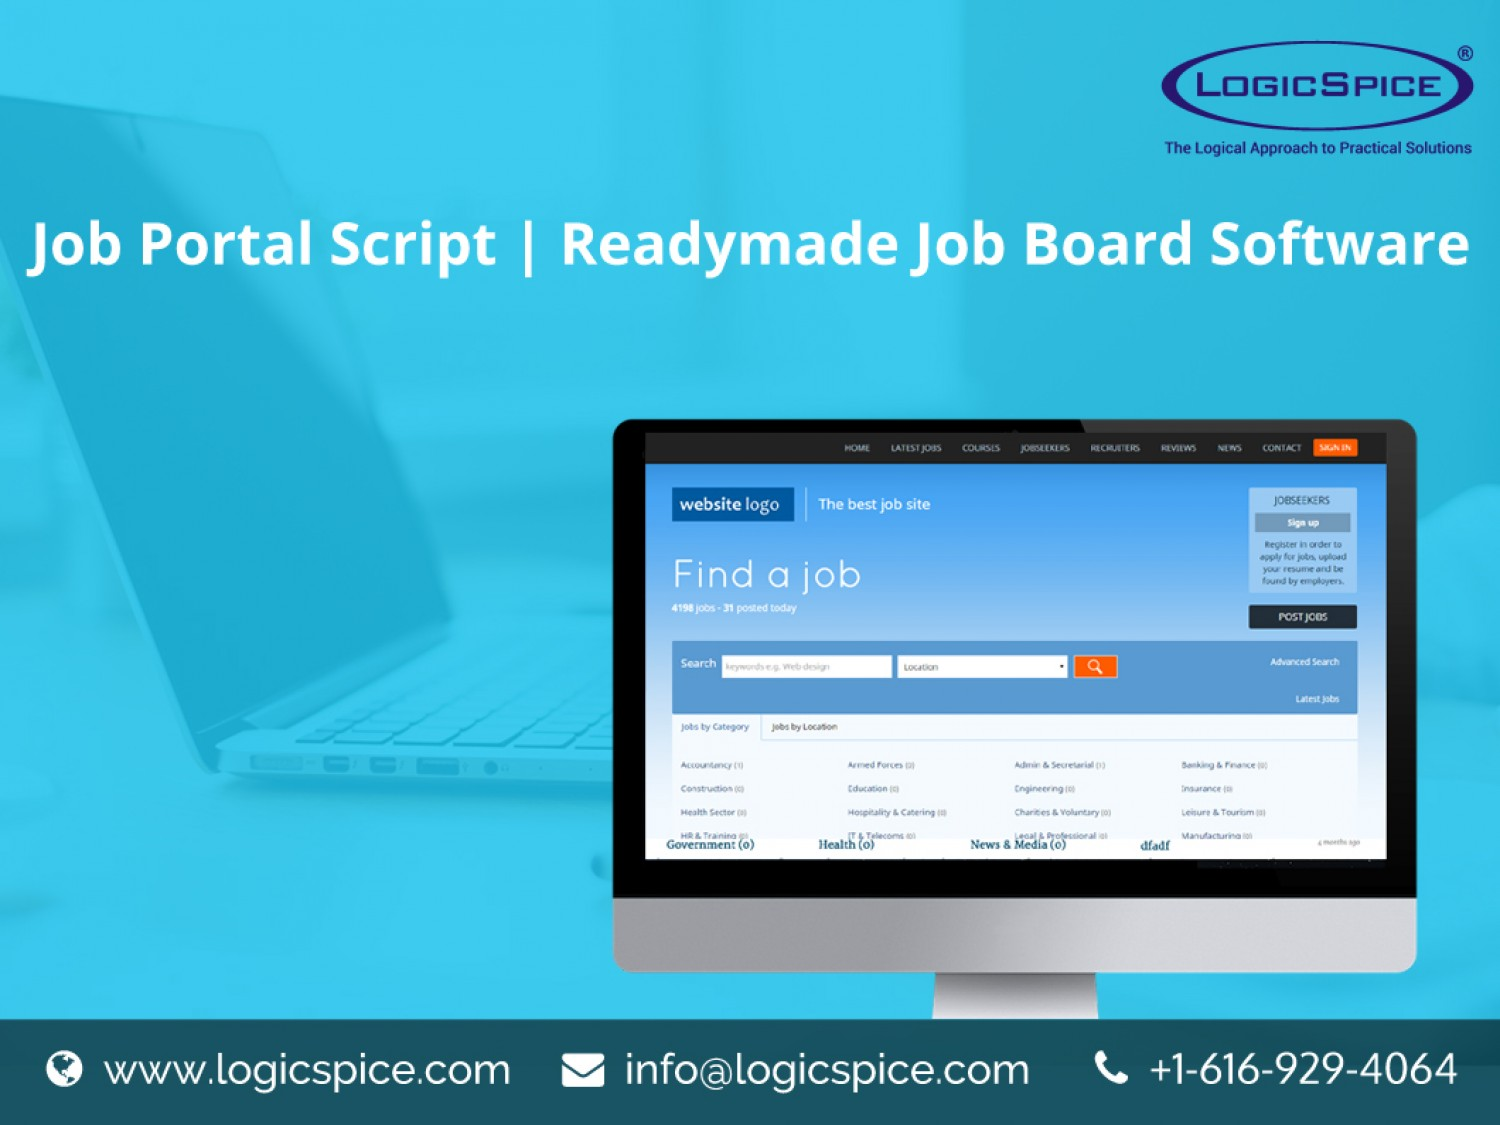 https://www.logicspice.com/products/job-portal-script/ website snapshot